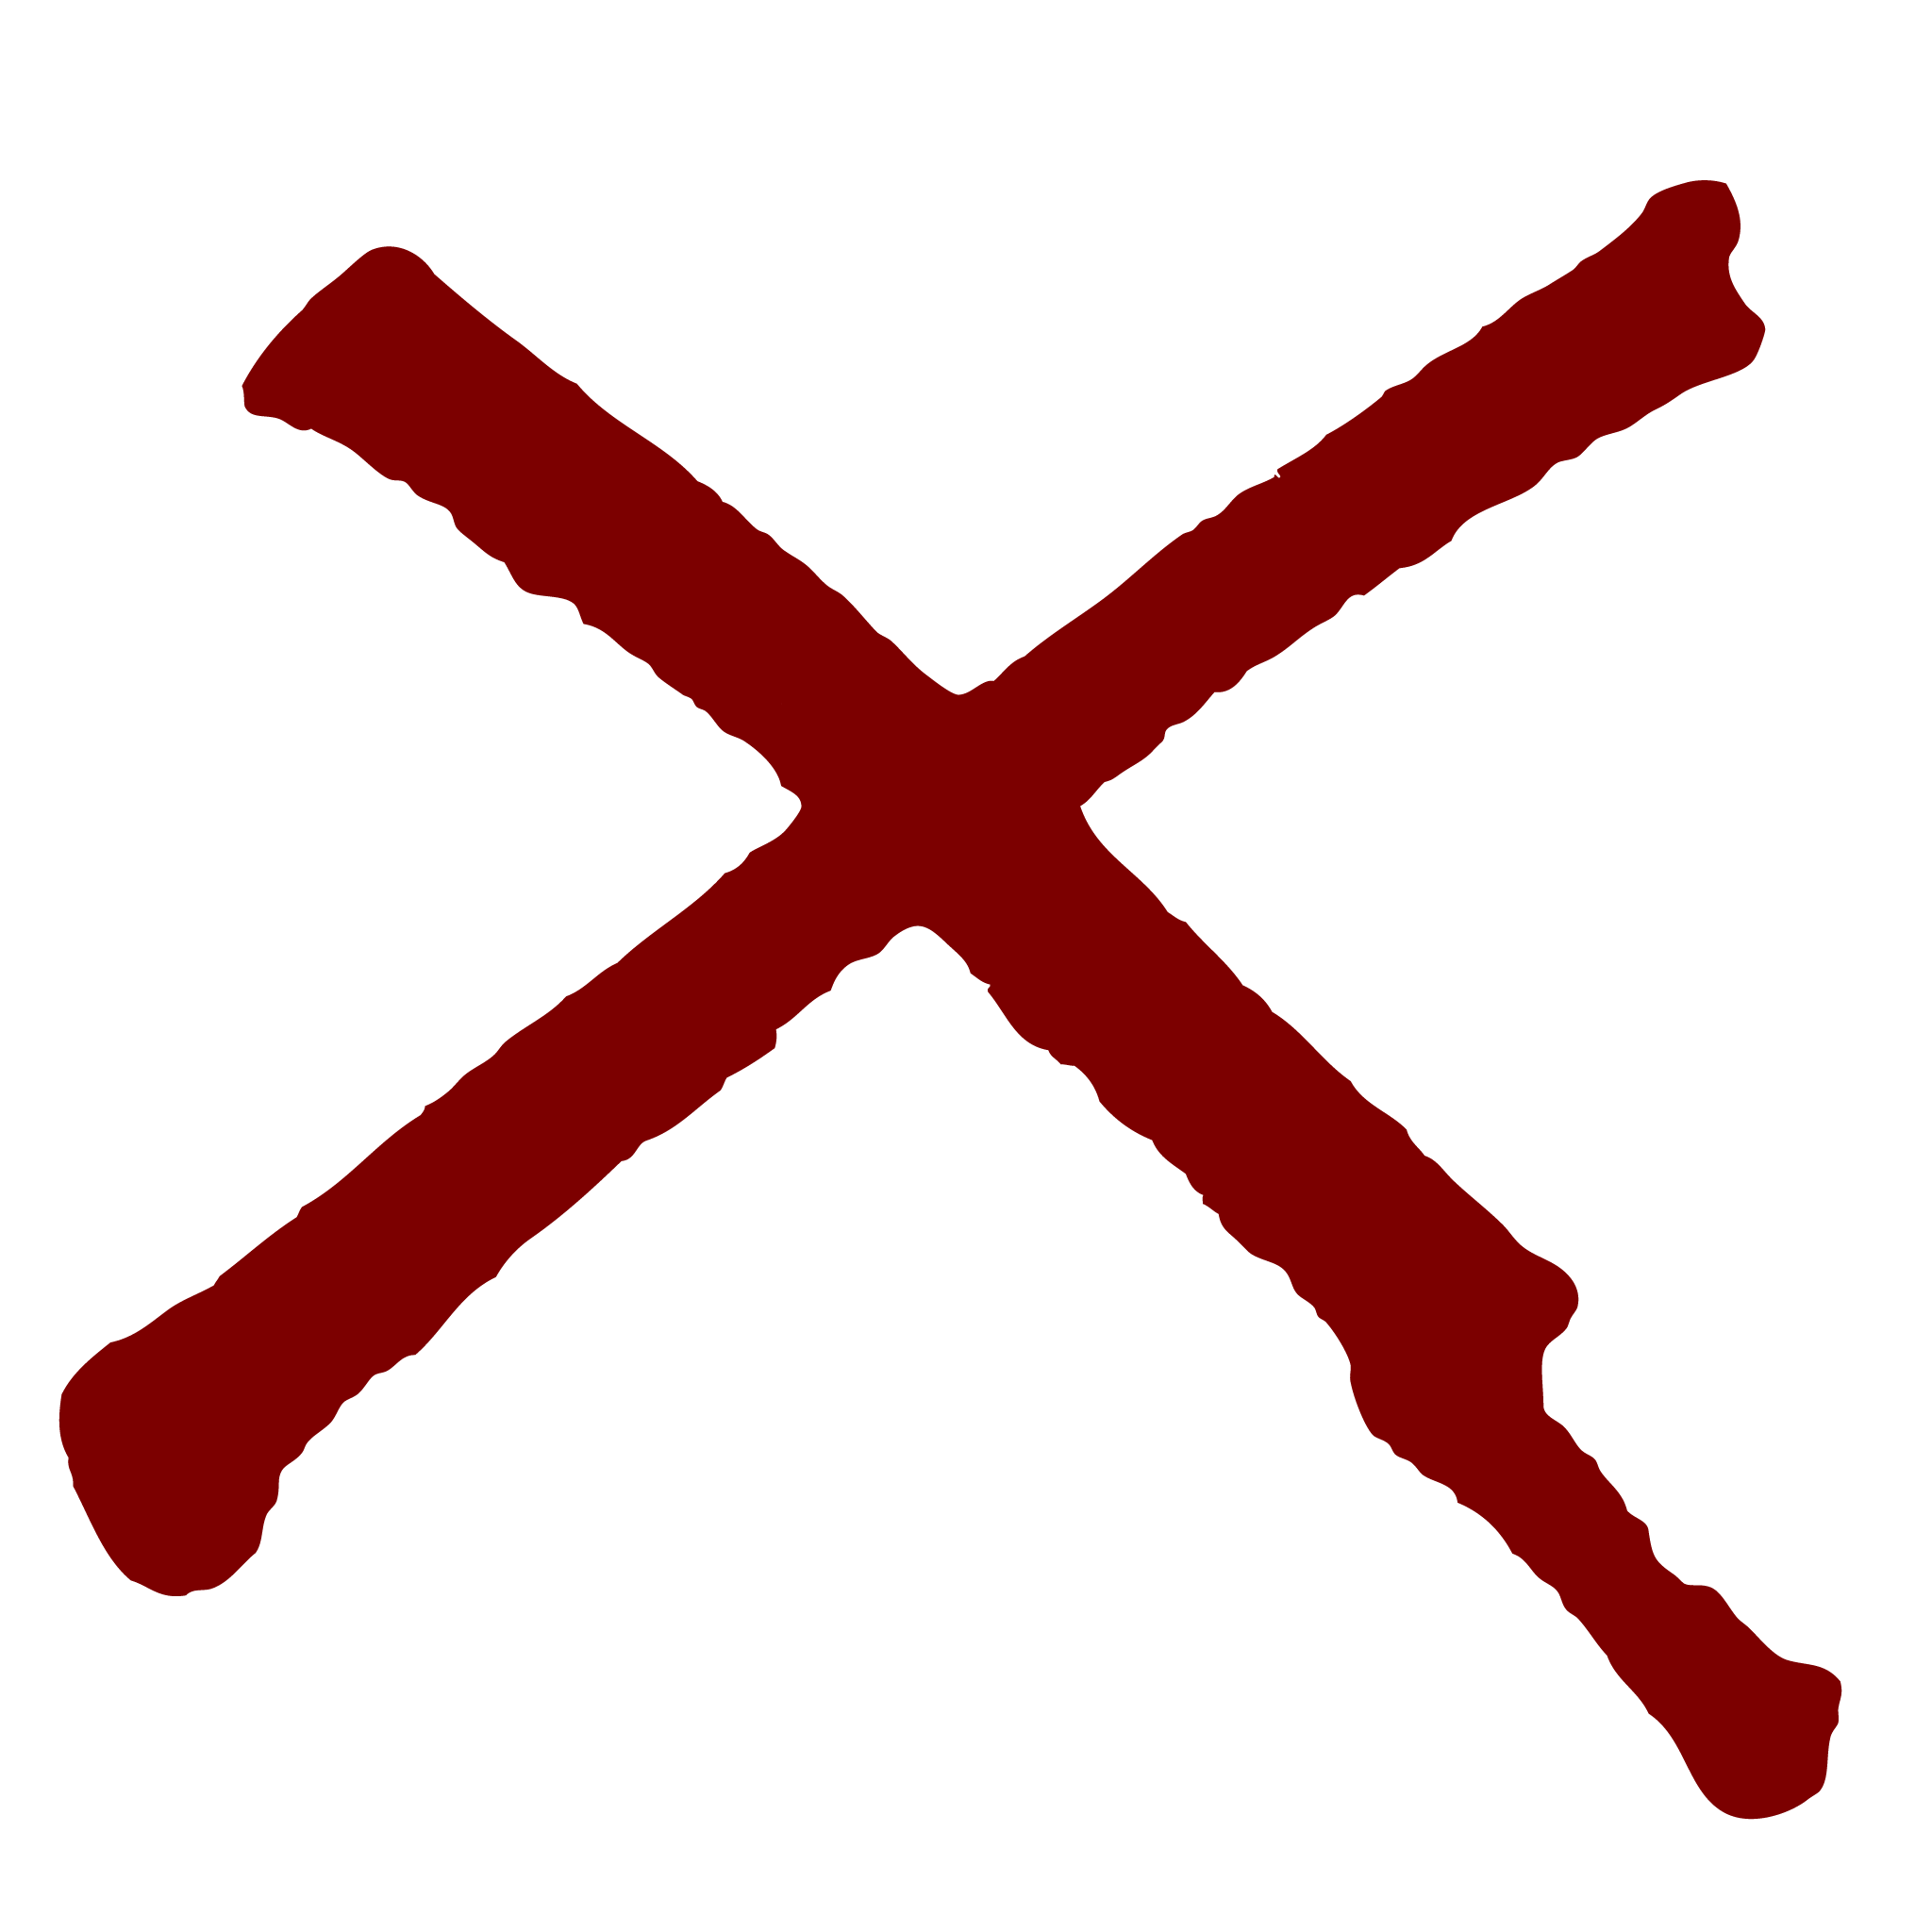 X png image. Transparent pictures free icons